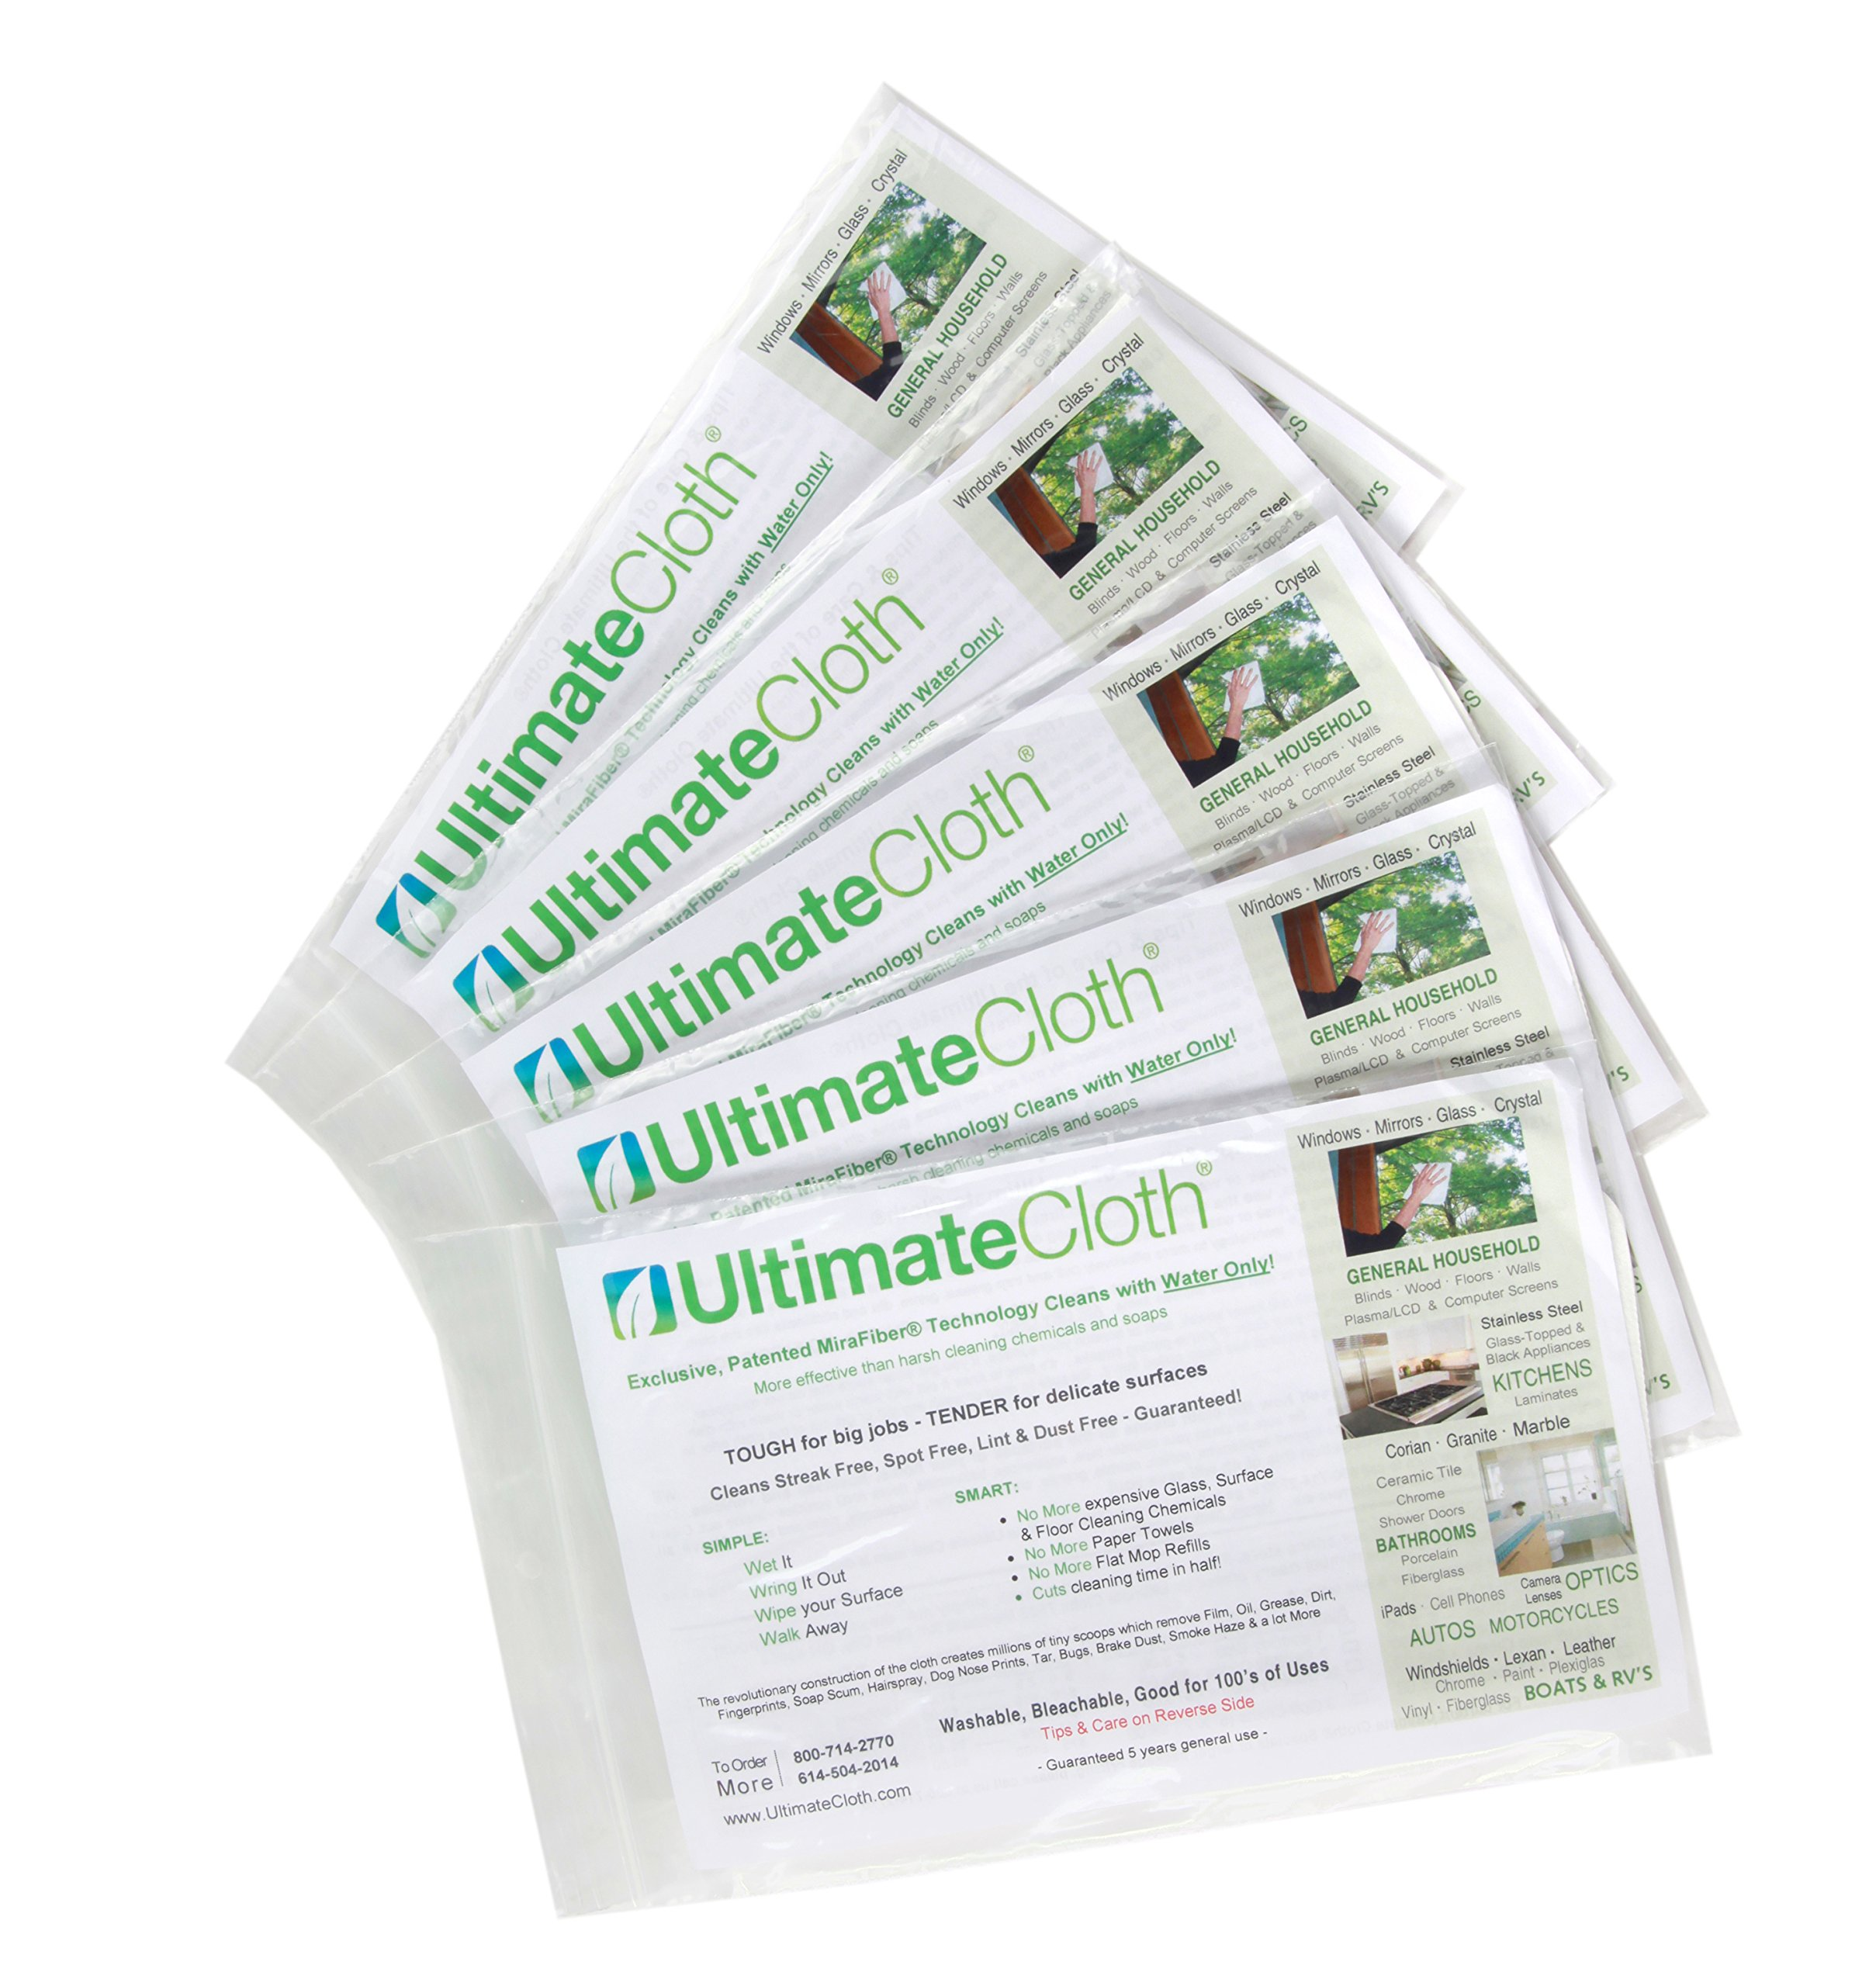 Ultimate Cloth The, Mirafiber - Advanced Microfiber Cleaning Cloth Reusable, EcoFriendly Chemical Free, Superior Multi-Surface Cleaning Cloth 5 Pack Medium Size White by Ultimate Cloth